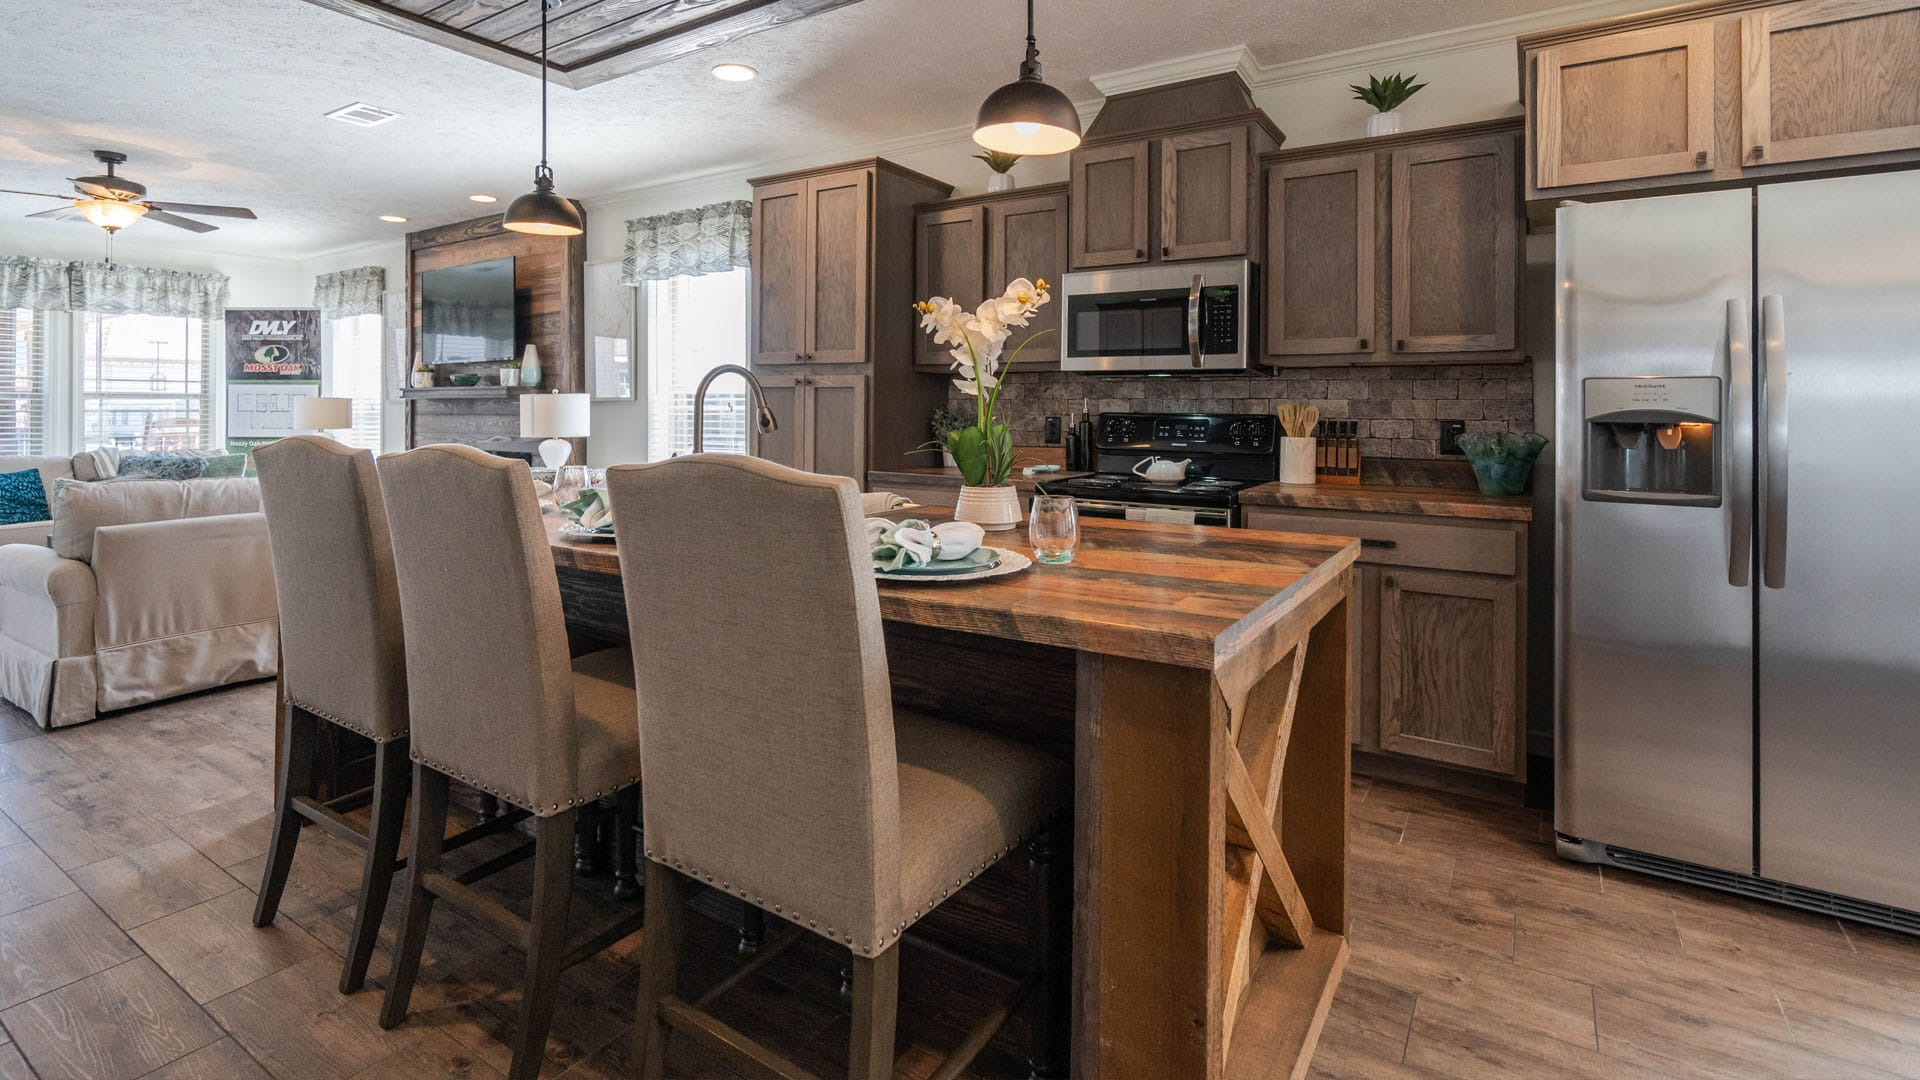 Deer Valley Homebuilders - Mossy Oak Nativ Living Series Robins Nest Kitchen